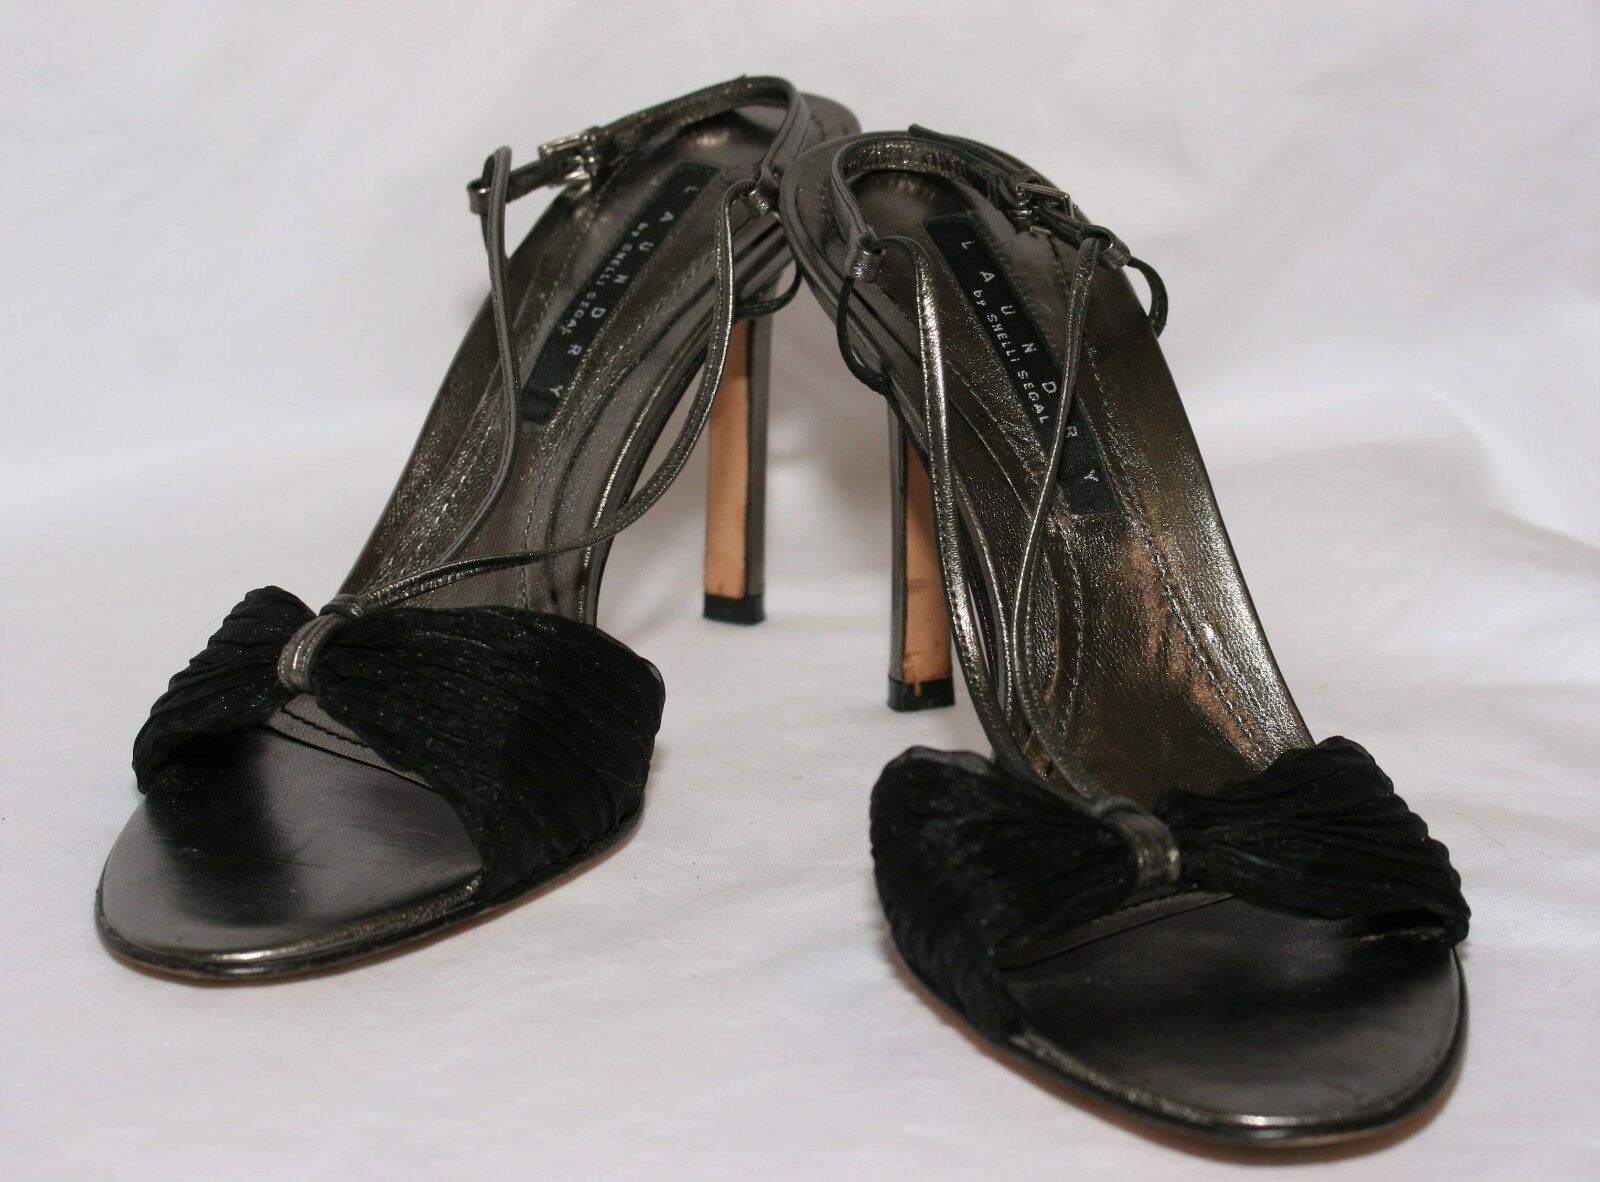 Laundry By Shelli Segal Womens 8.5 M Open Toe High Pewter Heel Dress Shoes Black Pewter High 57a7d5